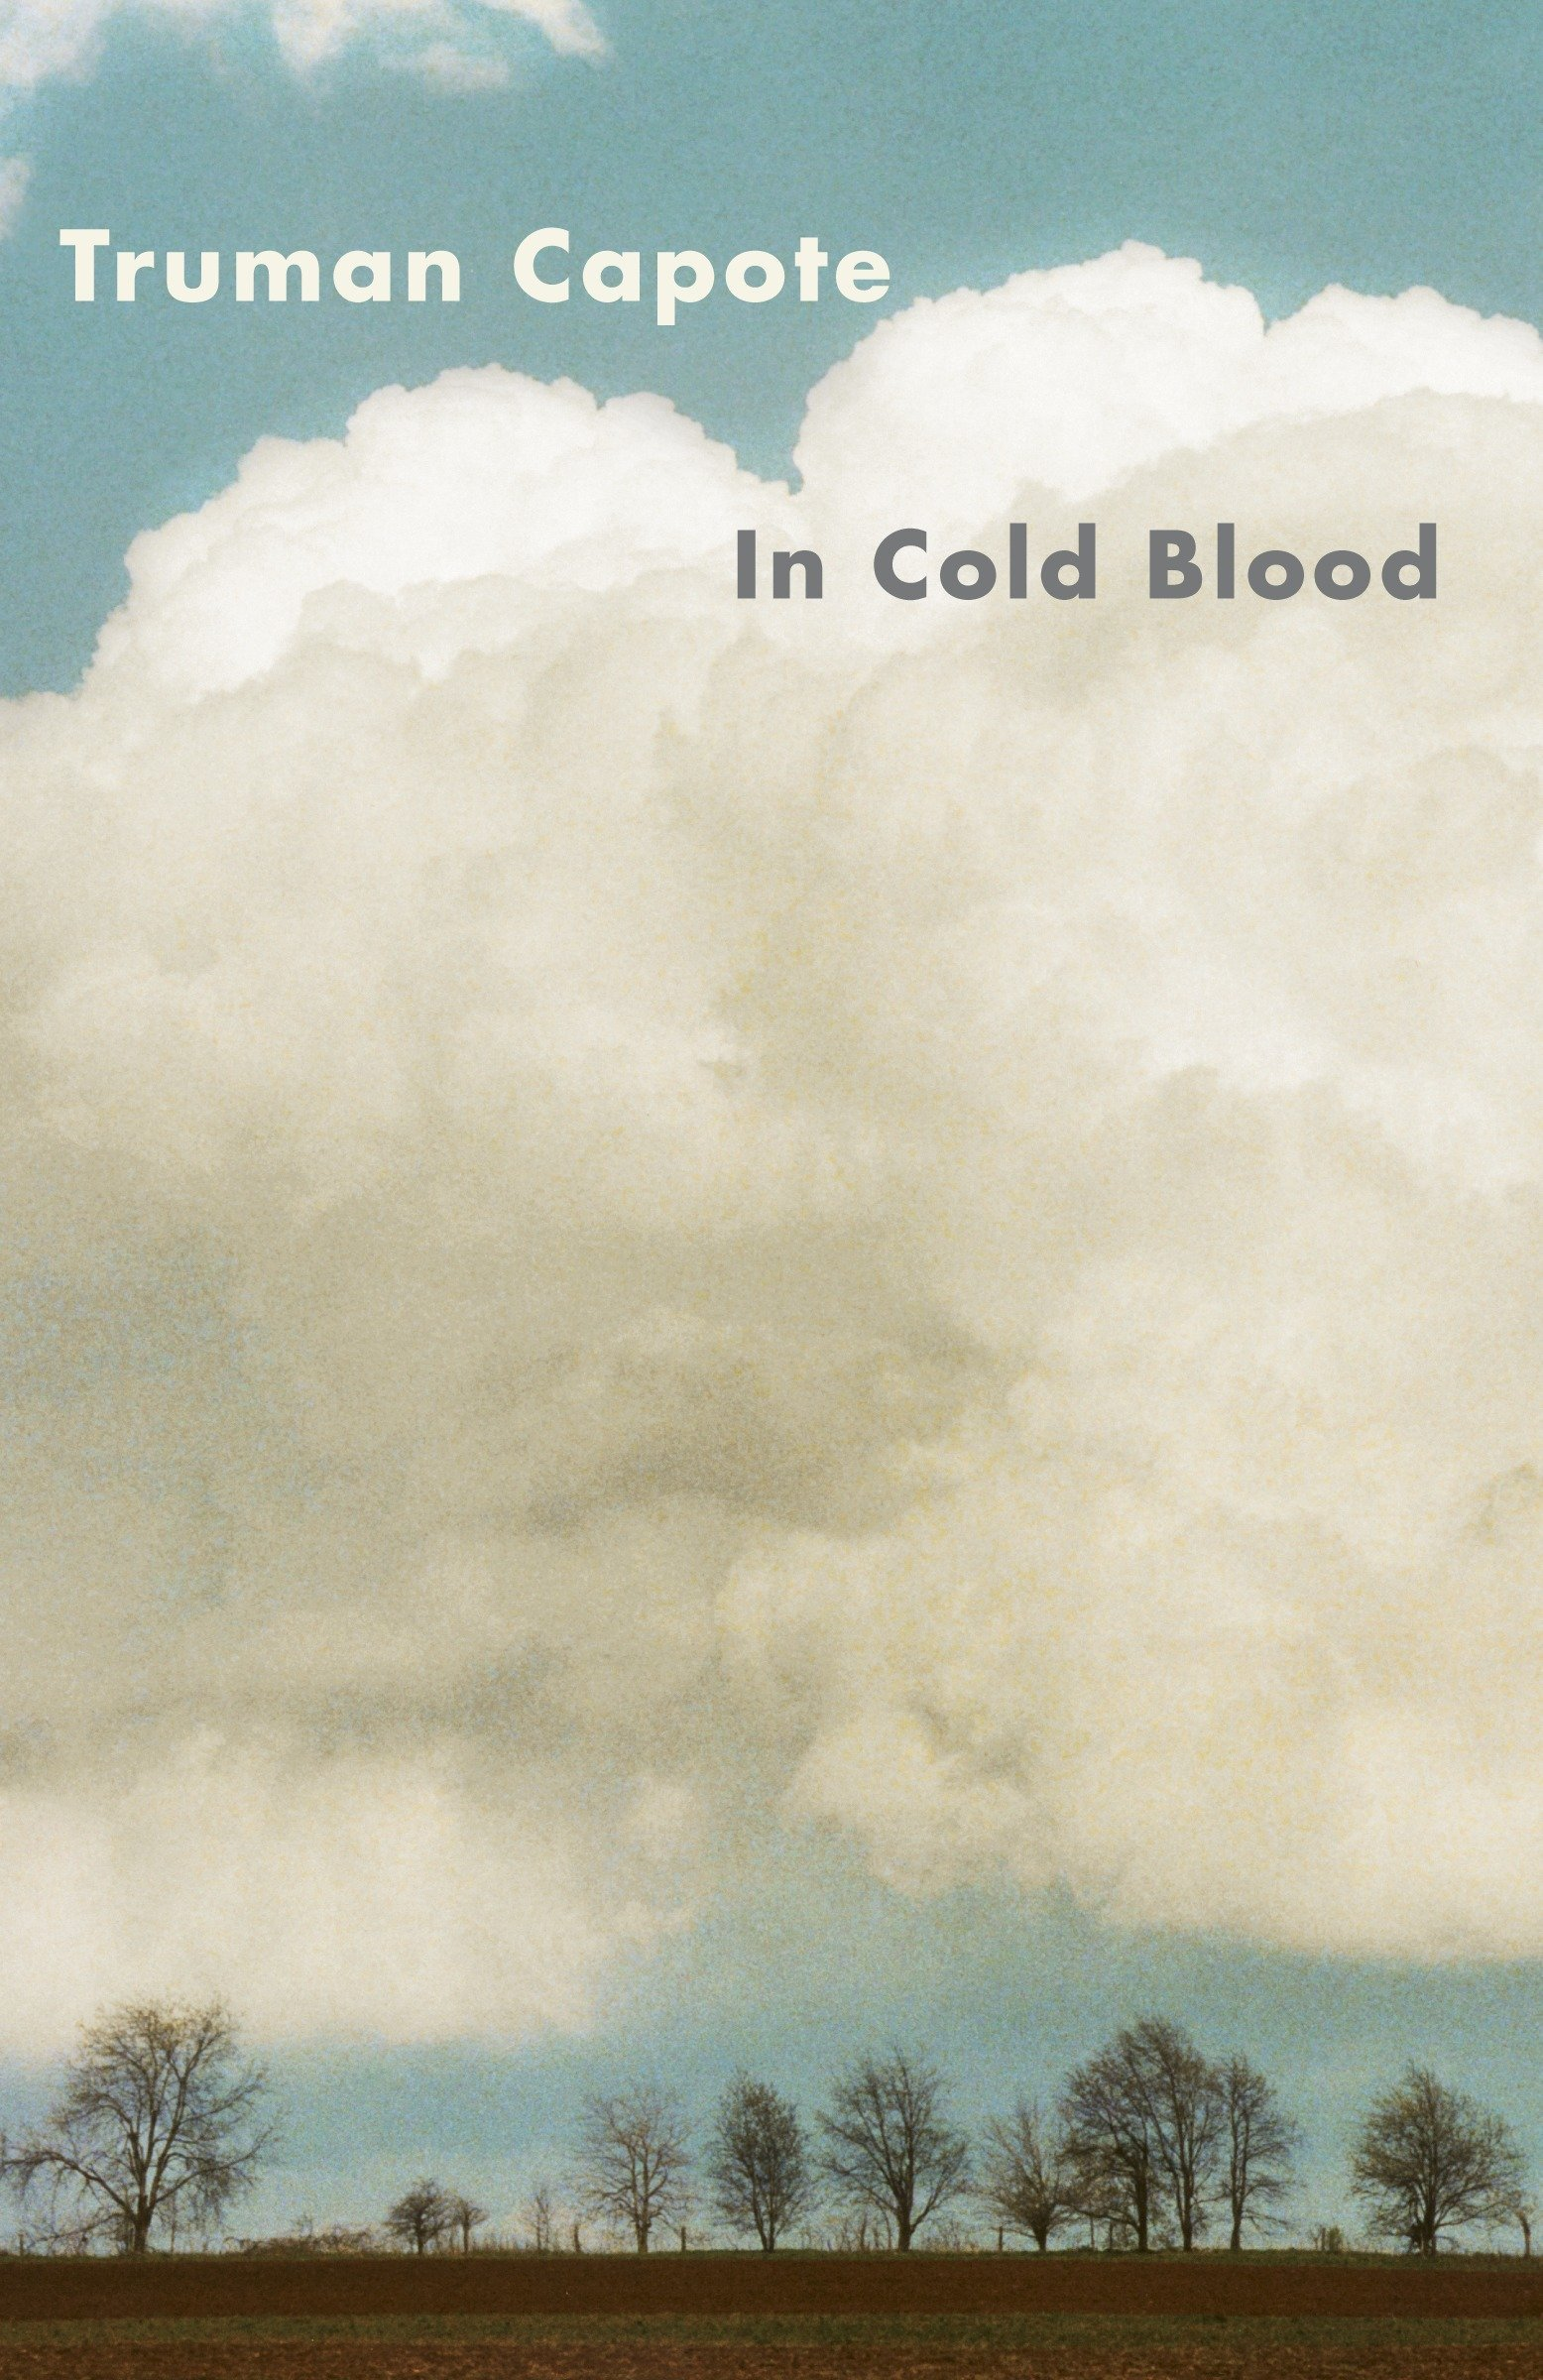 an analysis of the nonfiction novel cold blood by truman capote With this nonfiction novel, capote created, or at least perfected, a completely new form but we suggest that in cold blood belongs to the genres of psychological thriller and suspense, tragedy, an.